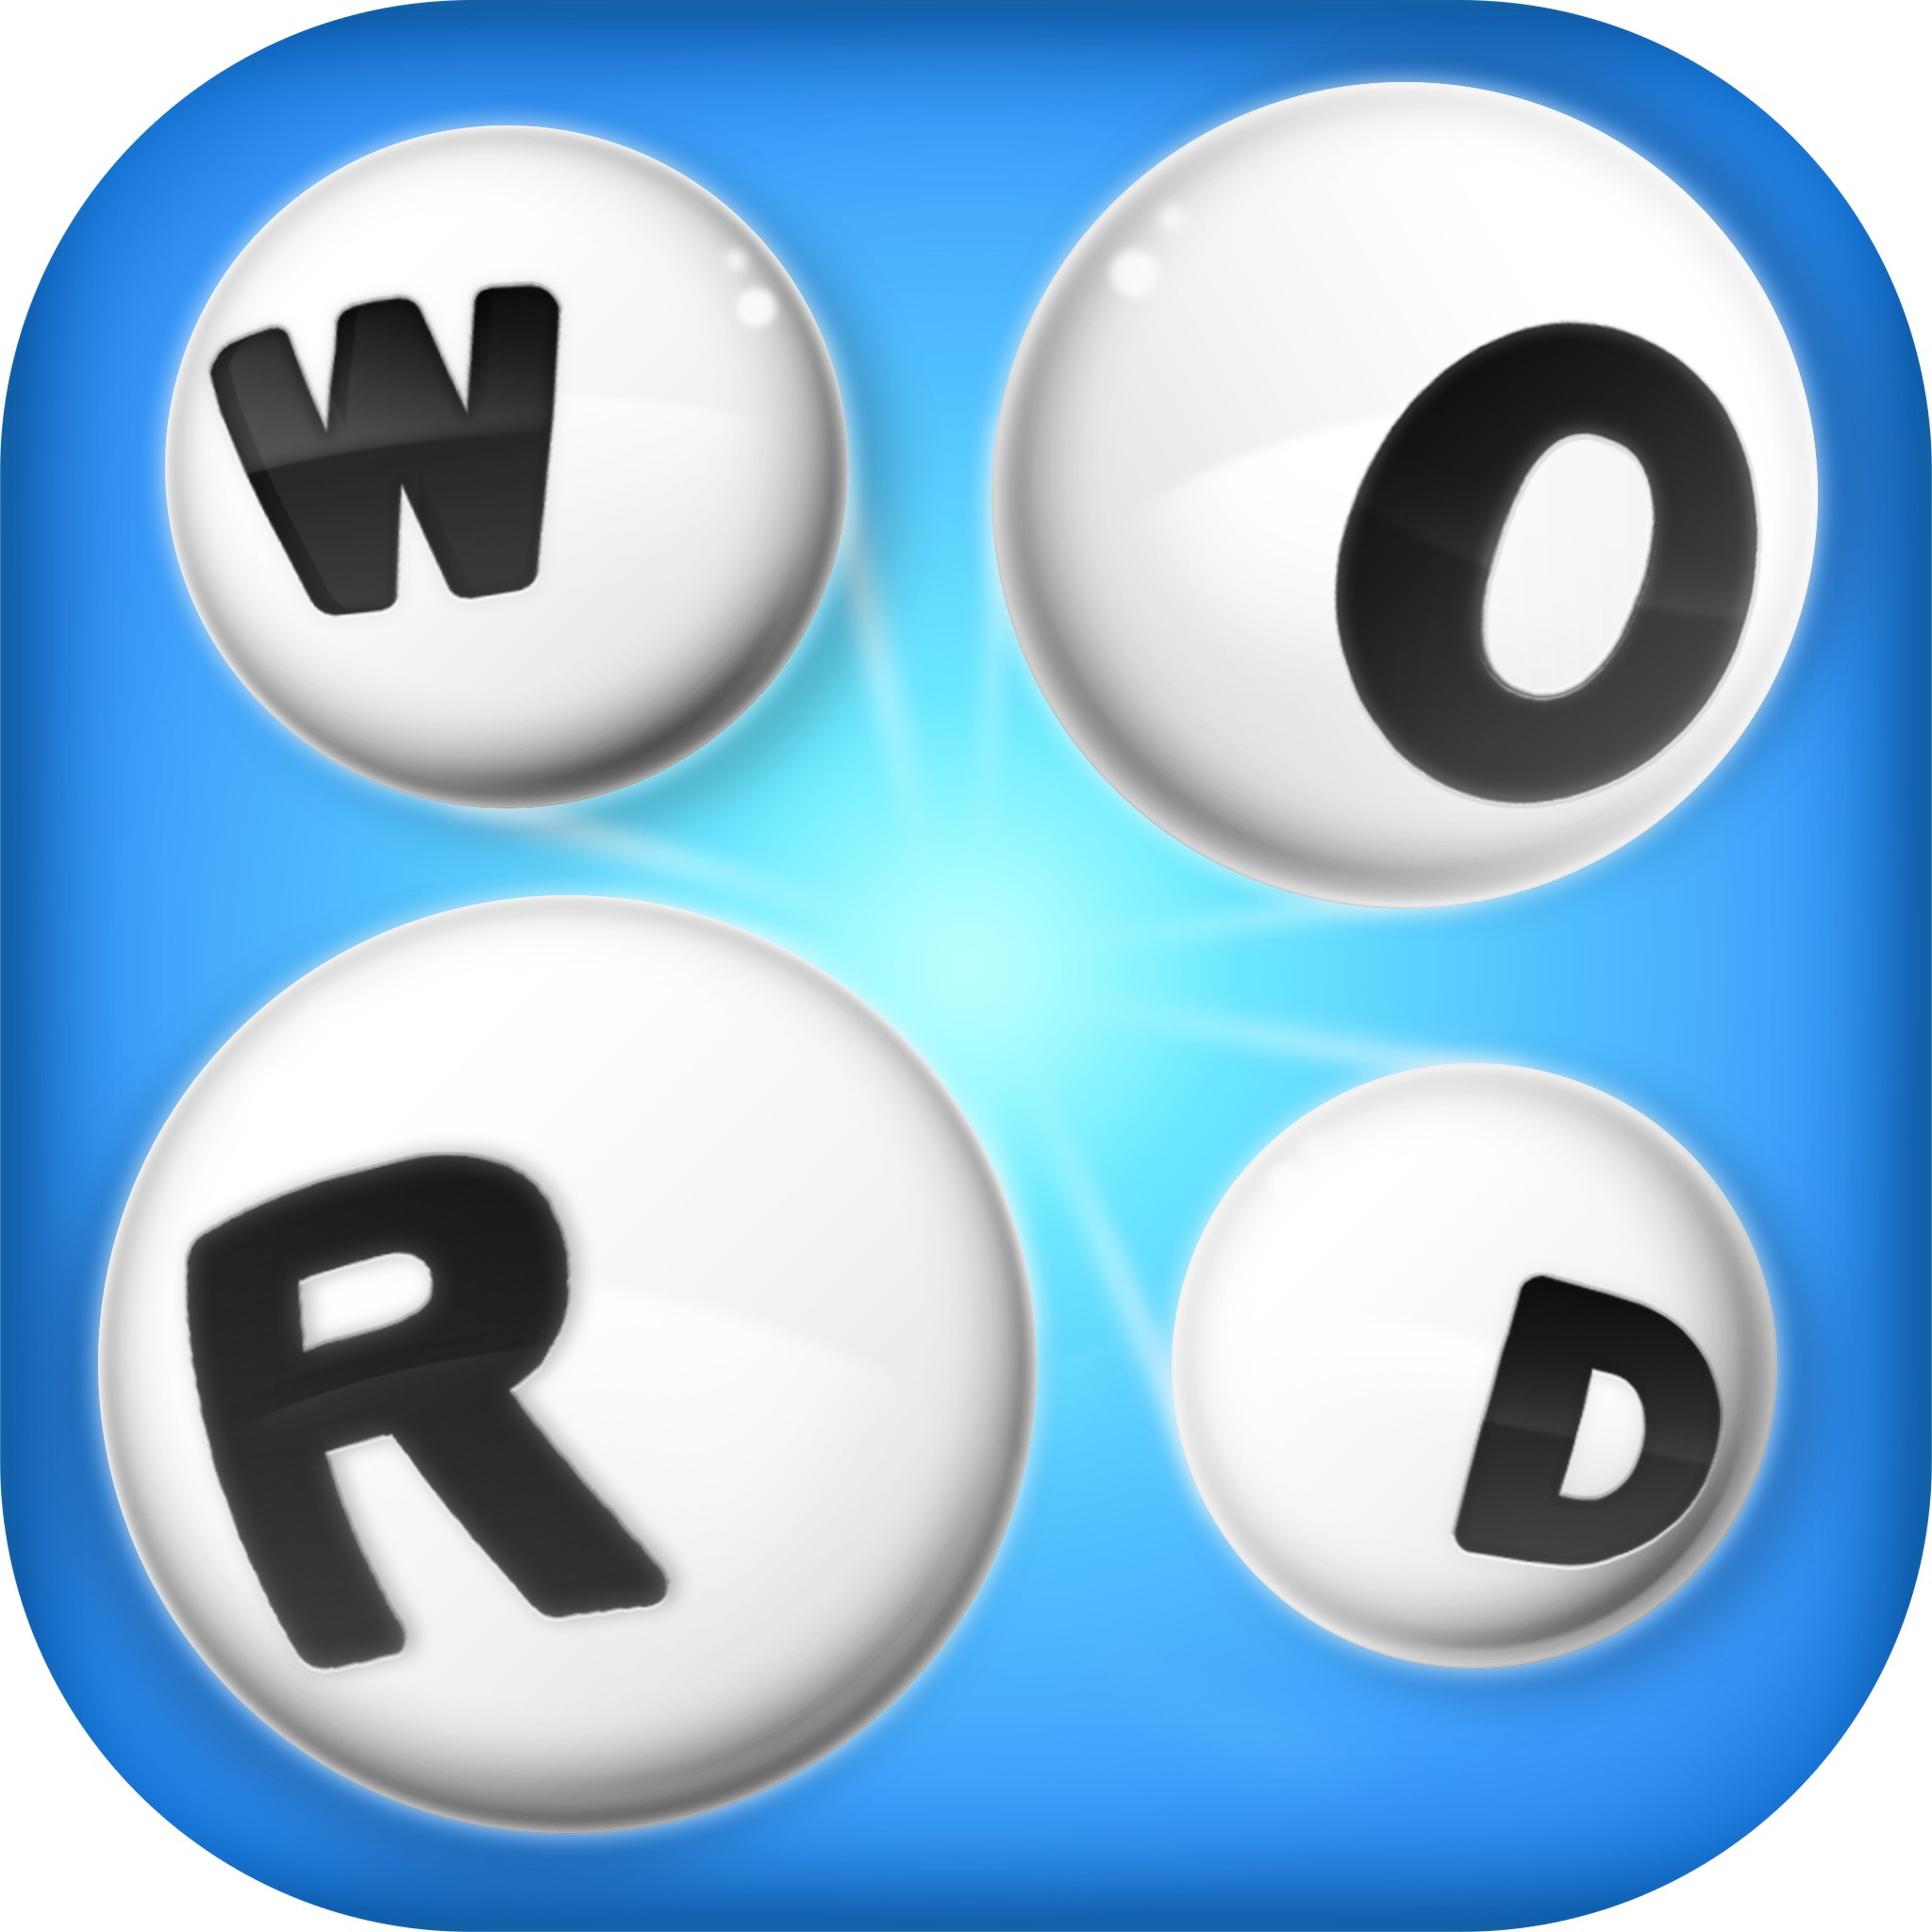 Create an eye catching app icon for a Word Puzzle Game!